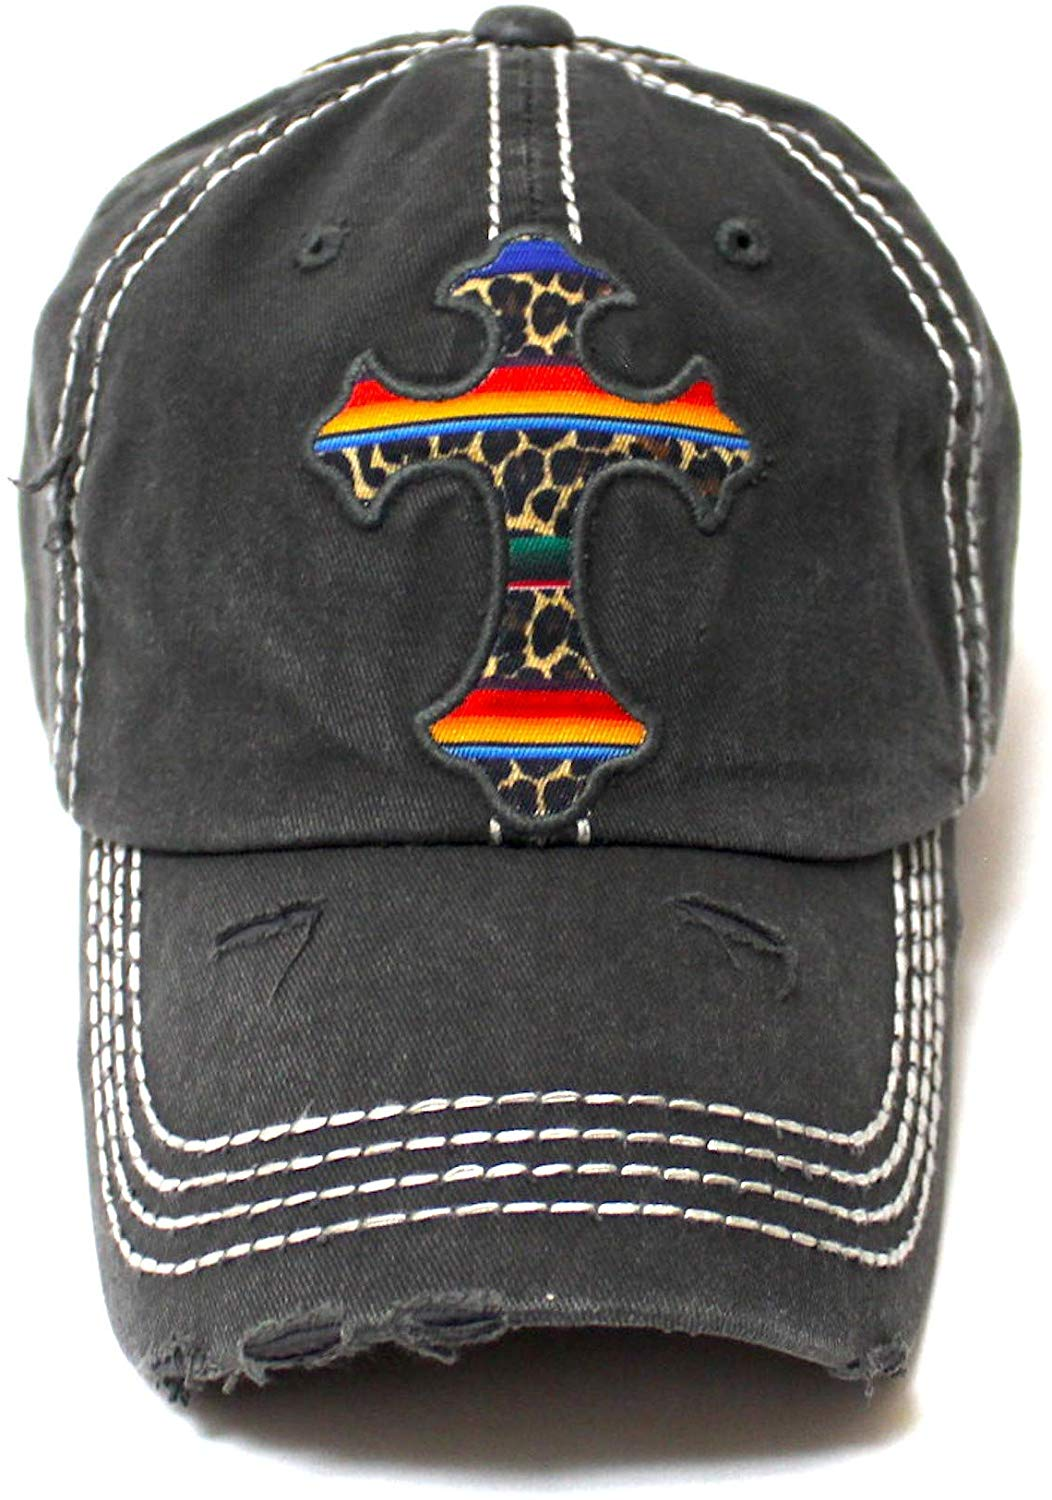 Classic Distressed Ballcap Christian Cross Monogram Embroidery, Serape Leopard Patterned Adjustable Hat, Vintage Blk - Caps 'N Vintage